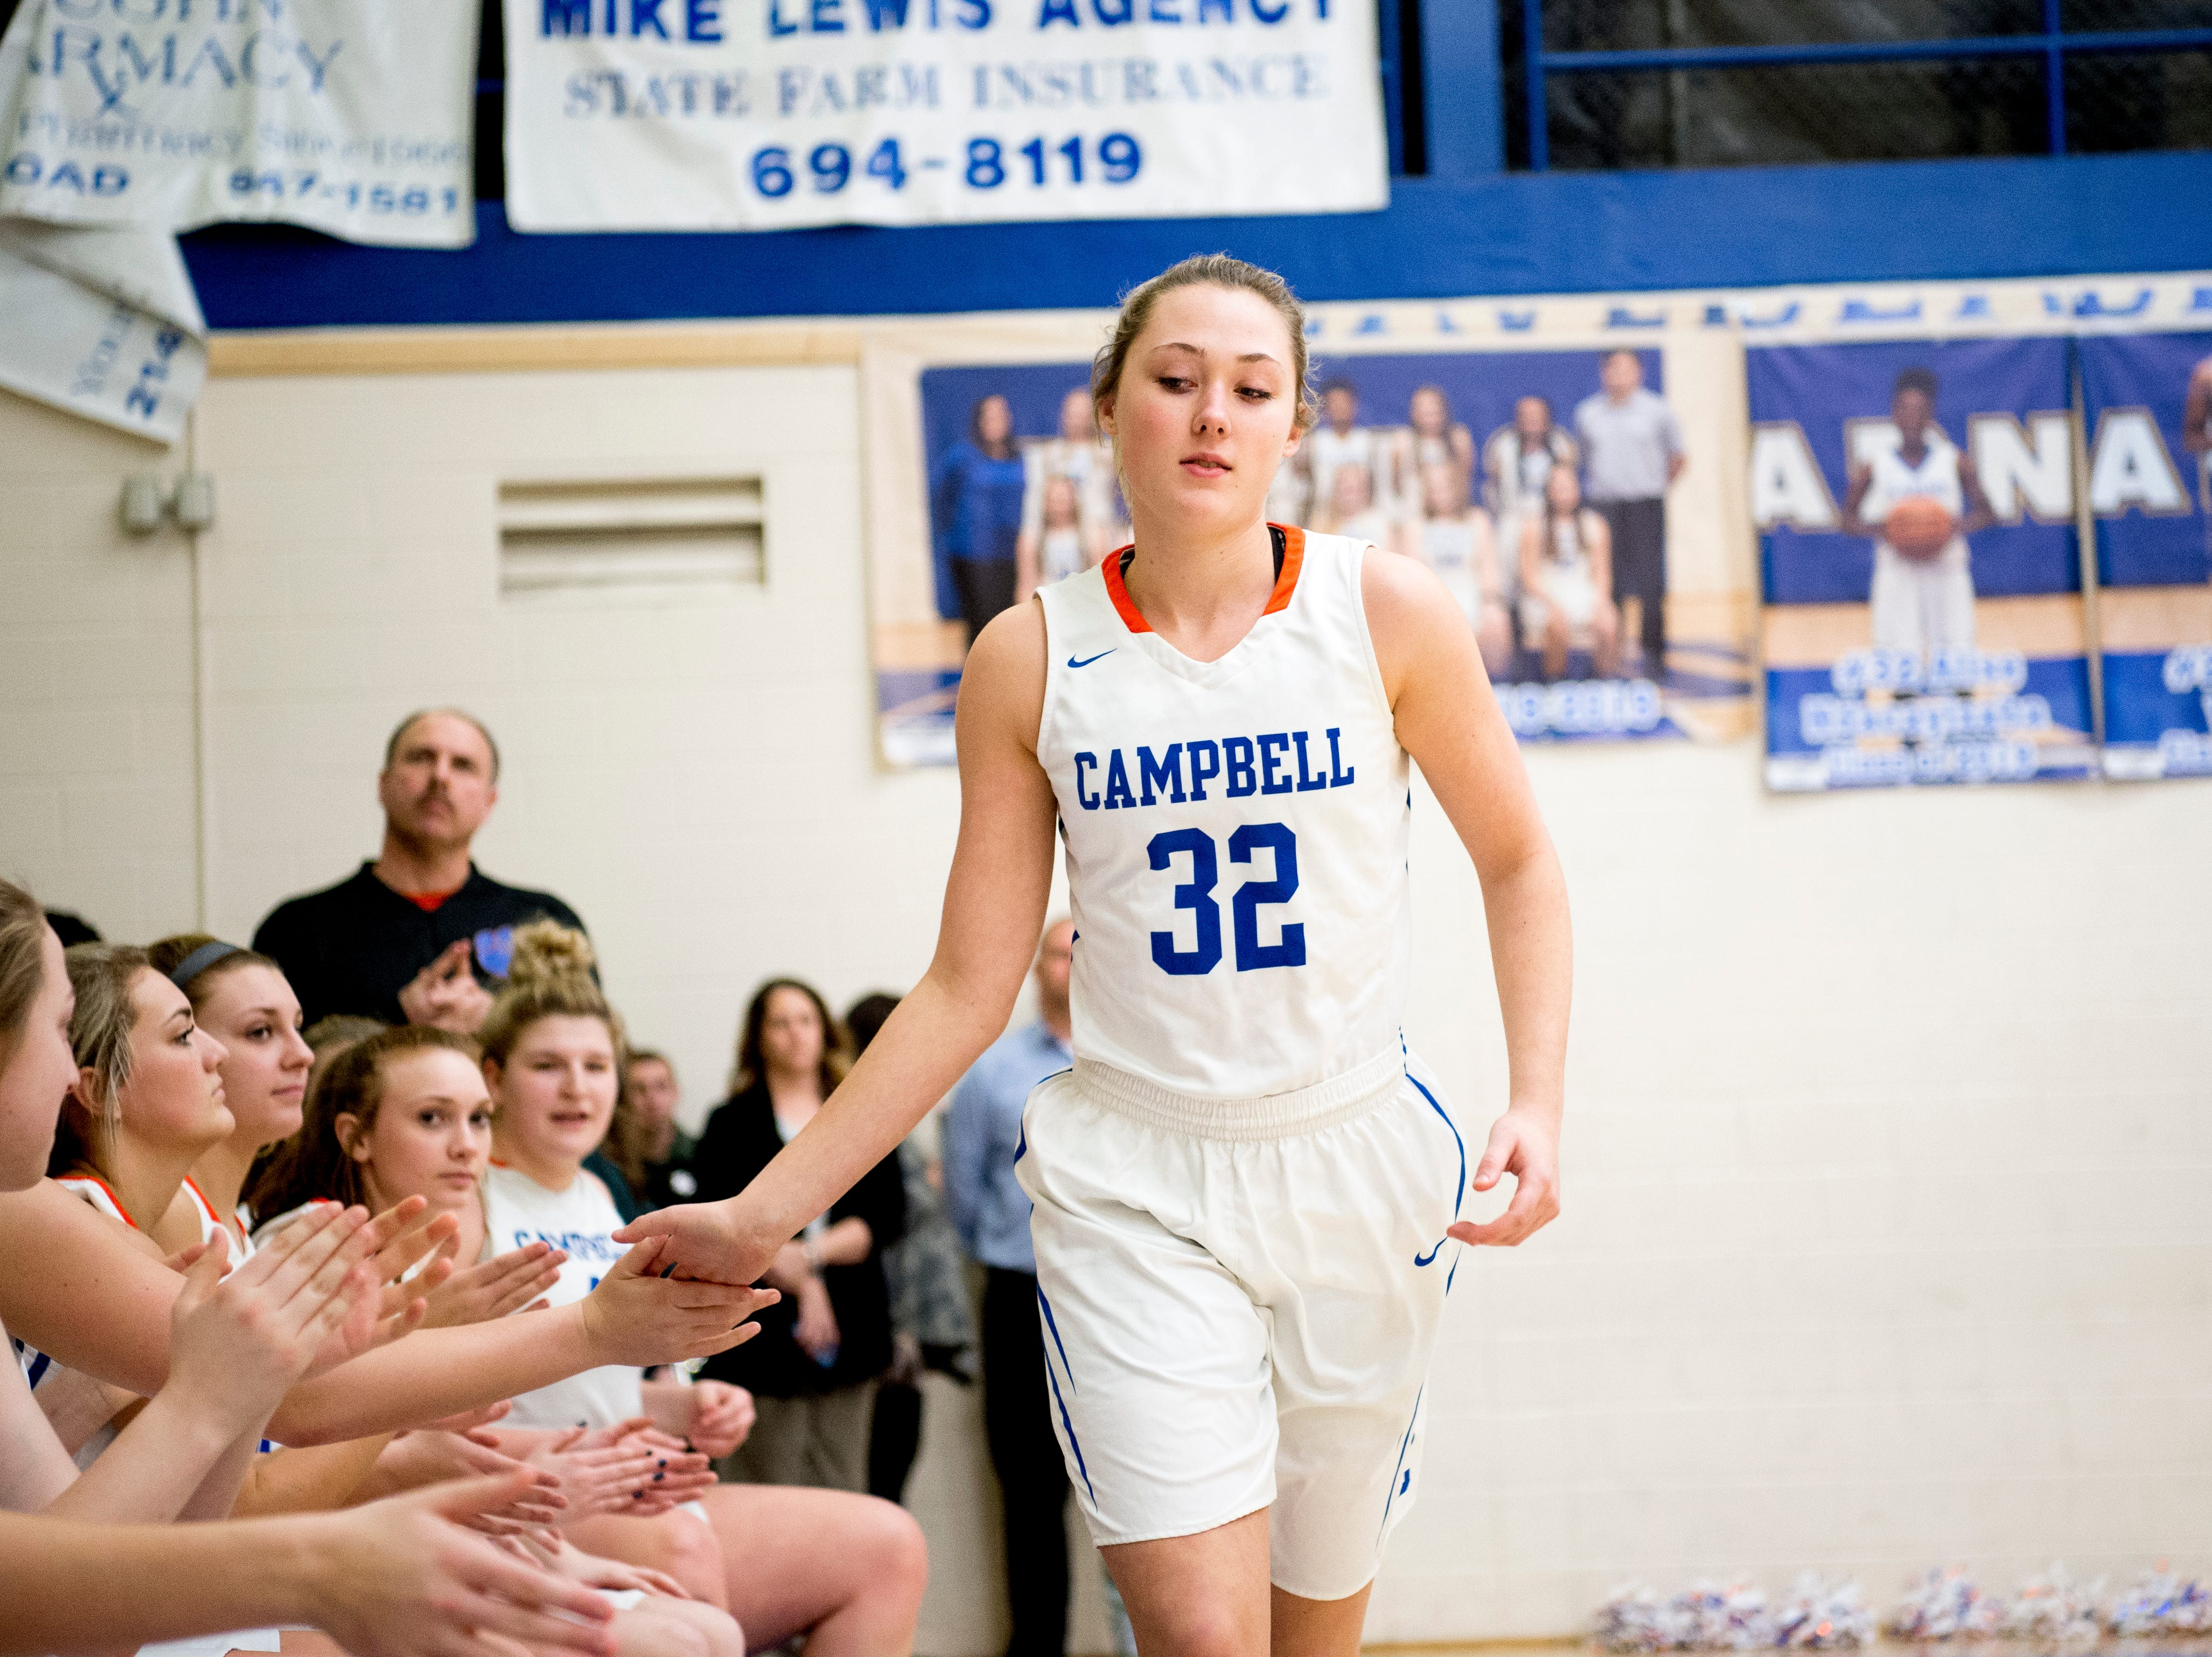 Campbell County's Skylar Boshears (32) is introduced during a district semifinal game between Anderson County and Campbell County at Karns High School in Knoxville, Tennessee on Saturday, February 16, 2019.